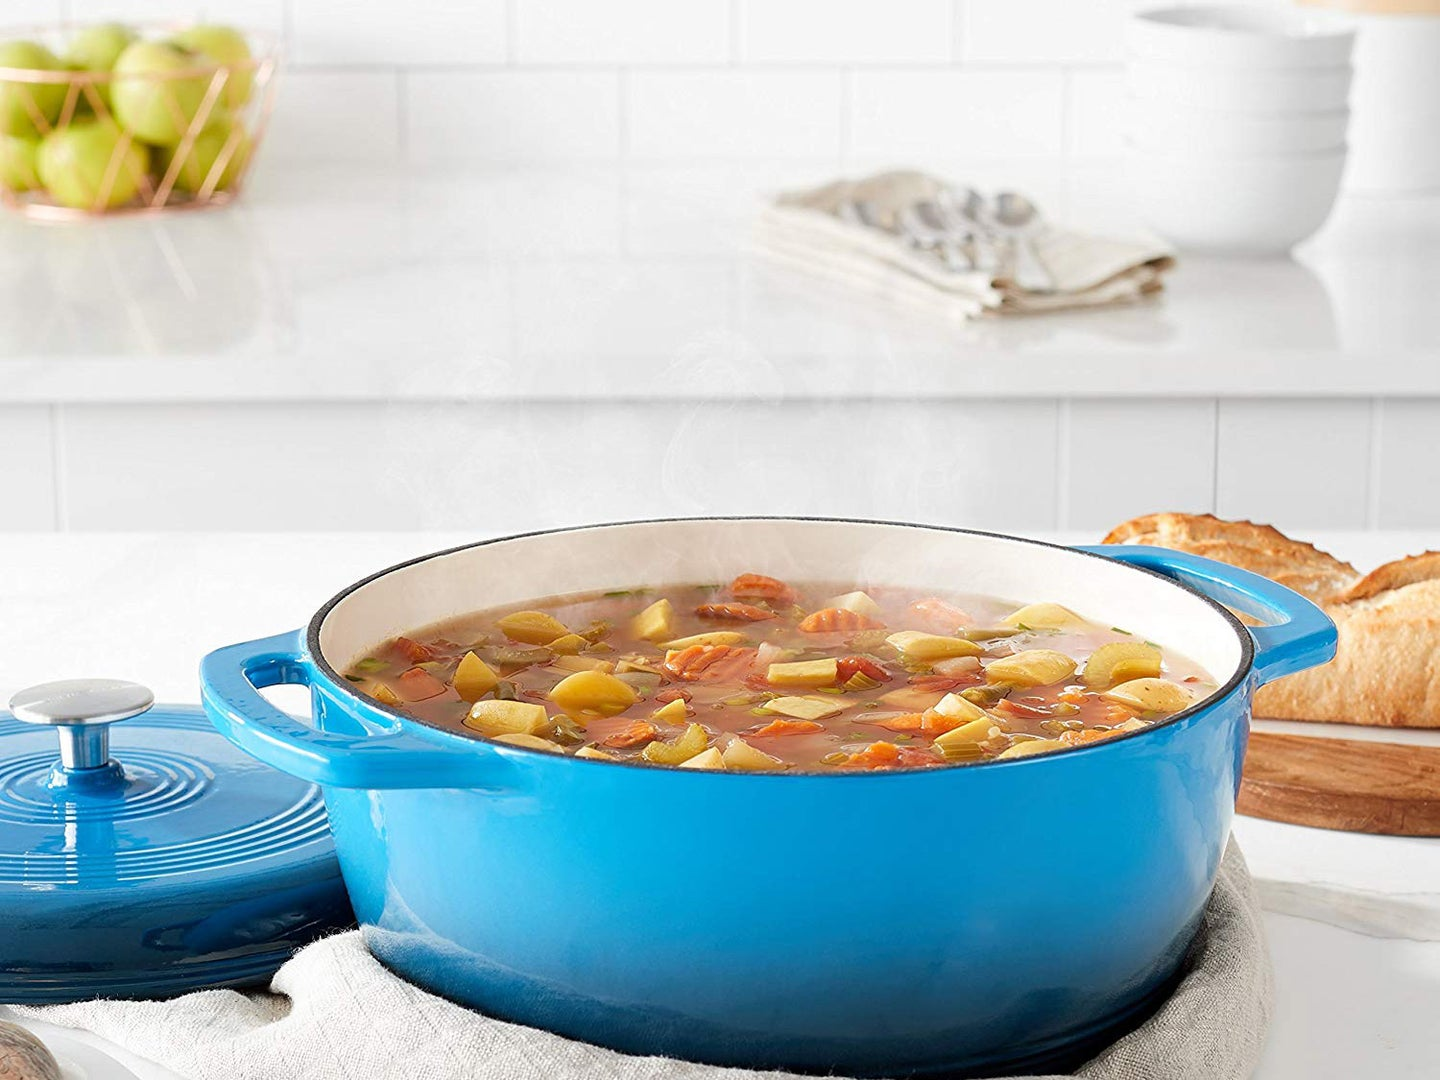 3 Things to Look for in Your Next Dutch Oven